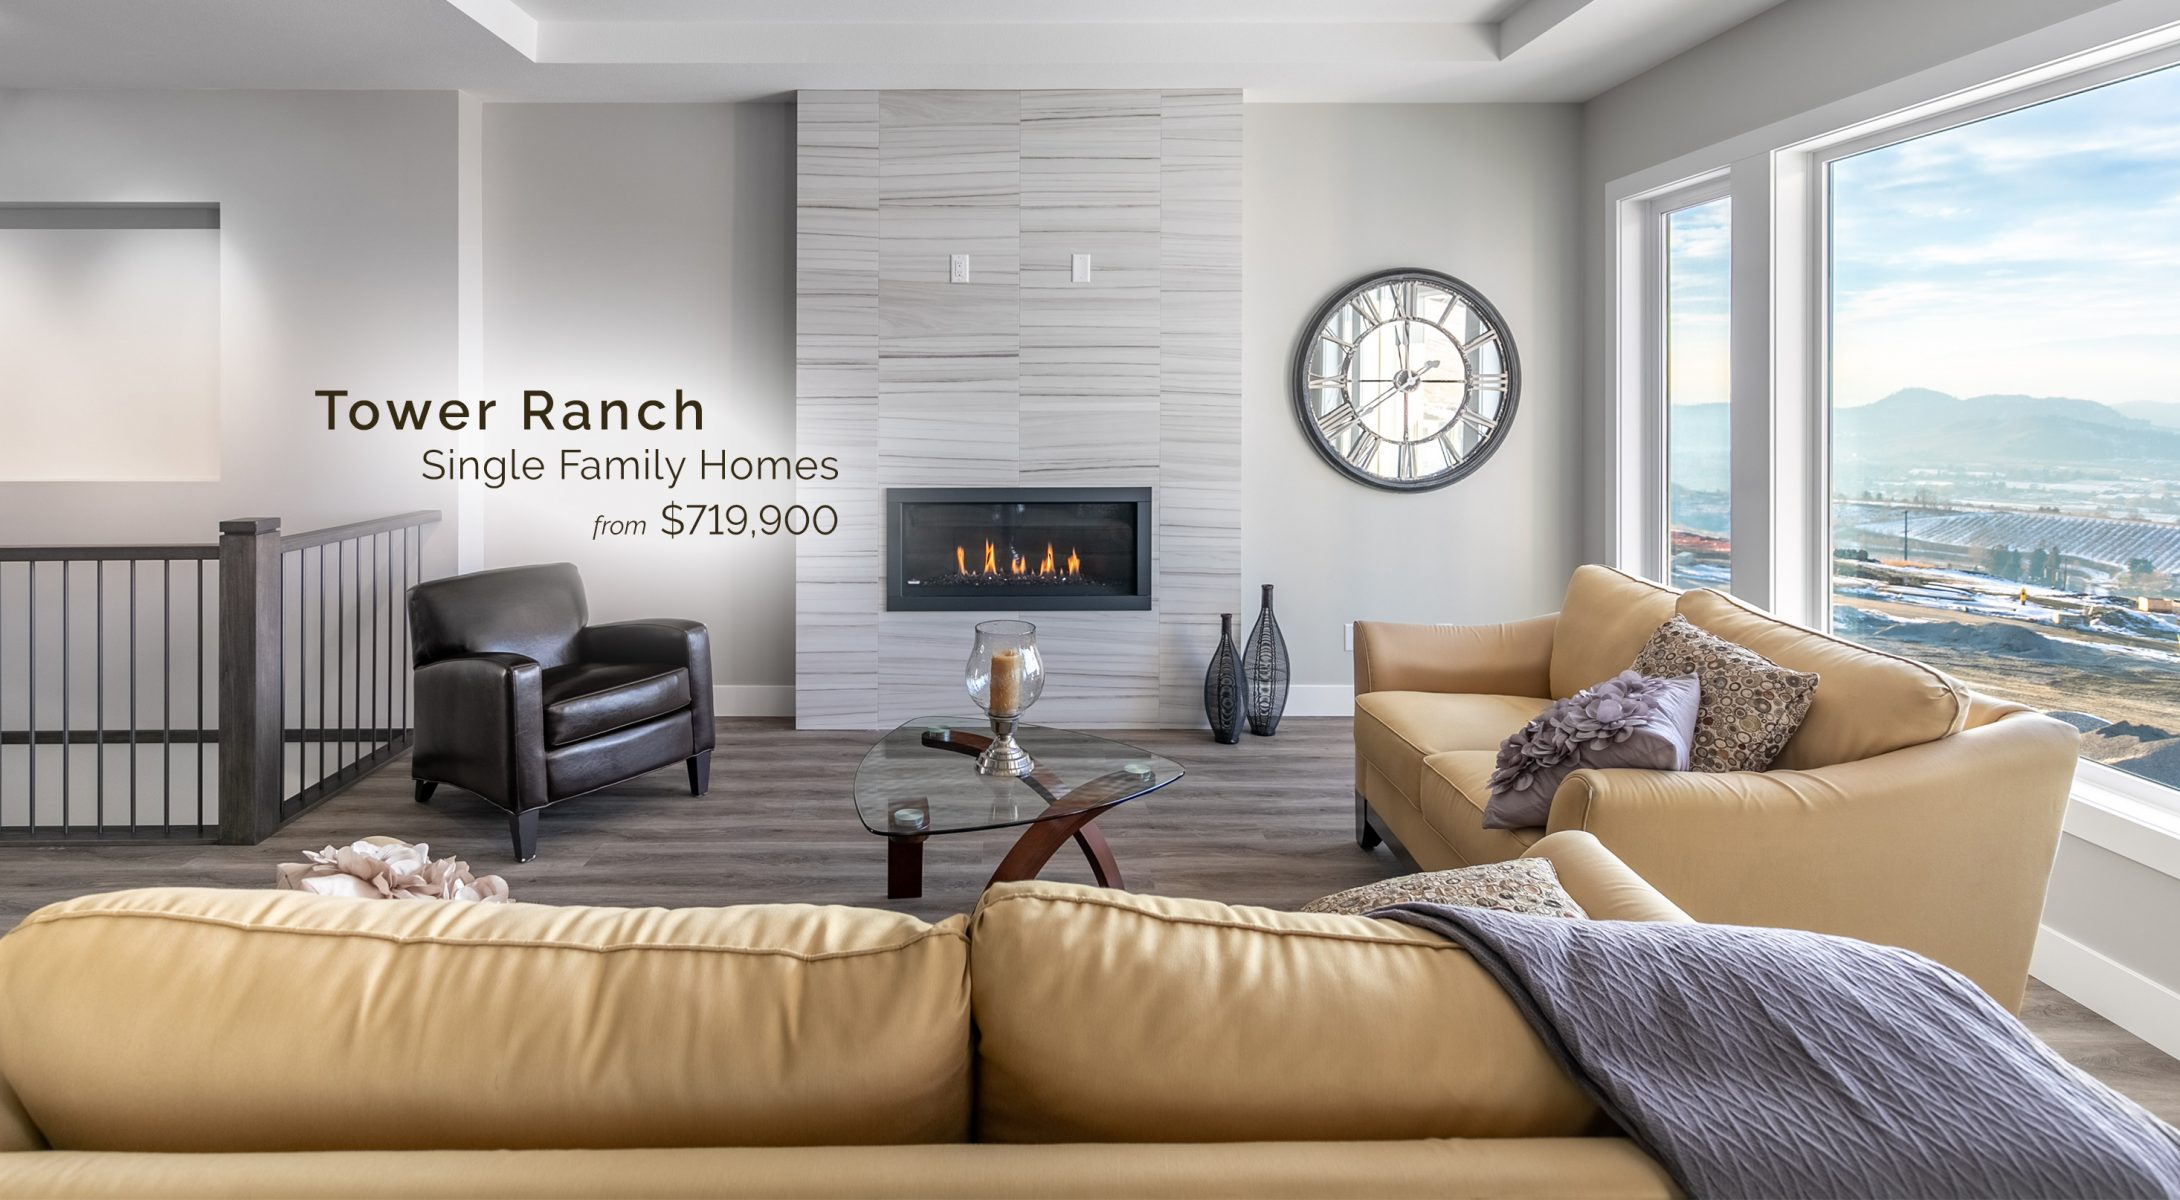 Tower Ranch